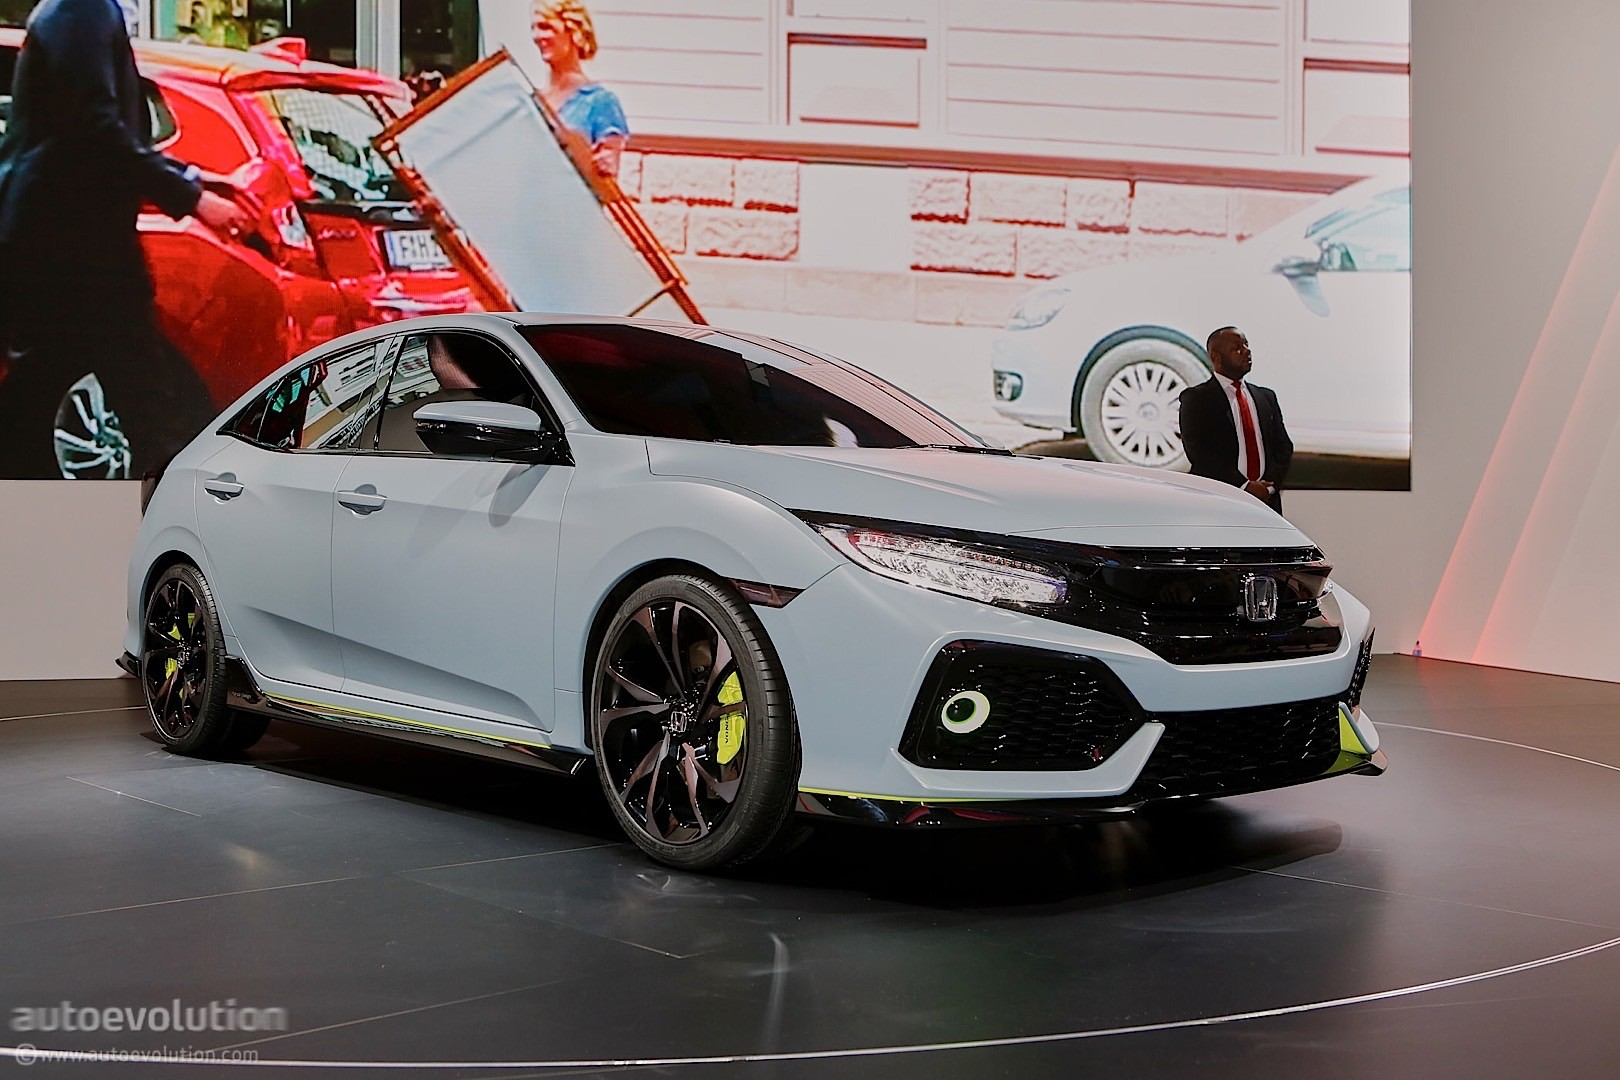 2018 Honda Civic Type R Cost Cars Release Date And Price   2017 - 2018 ...